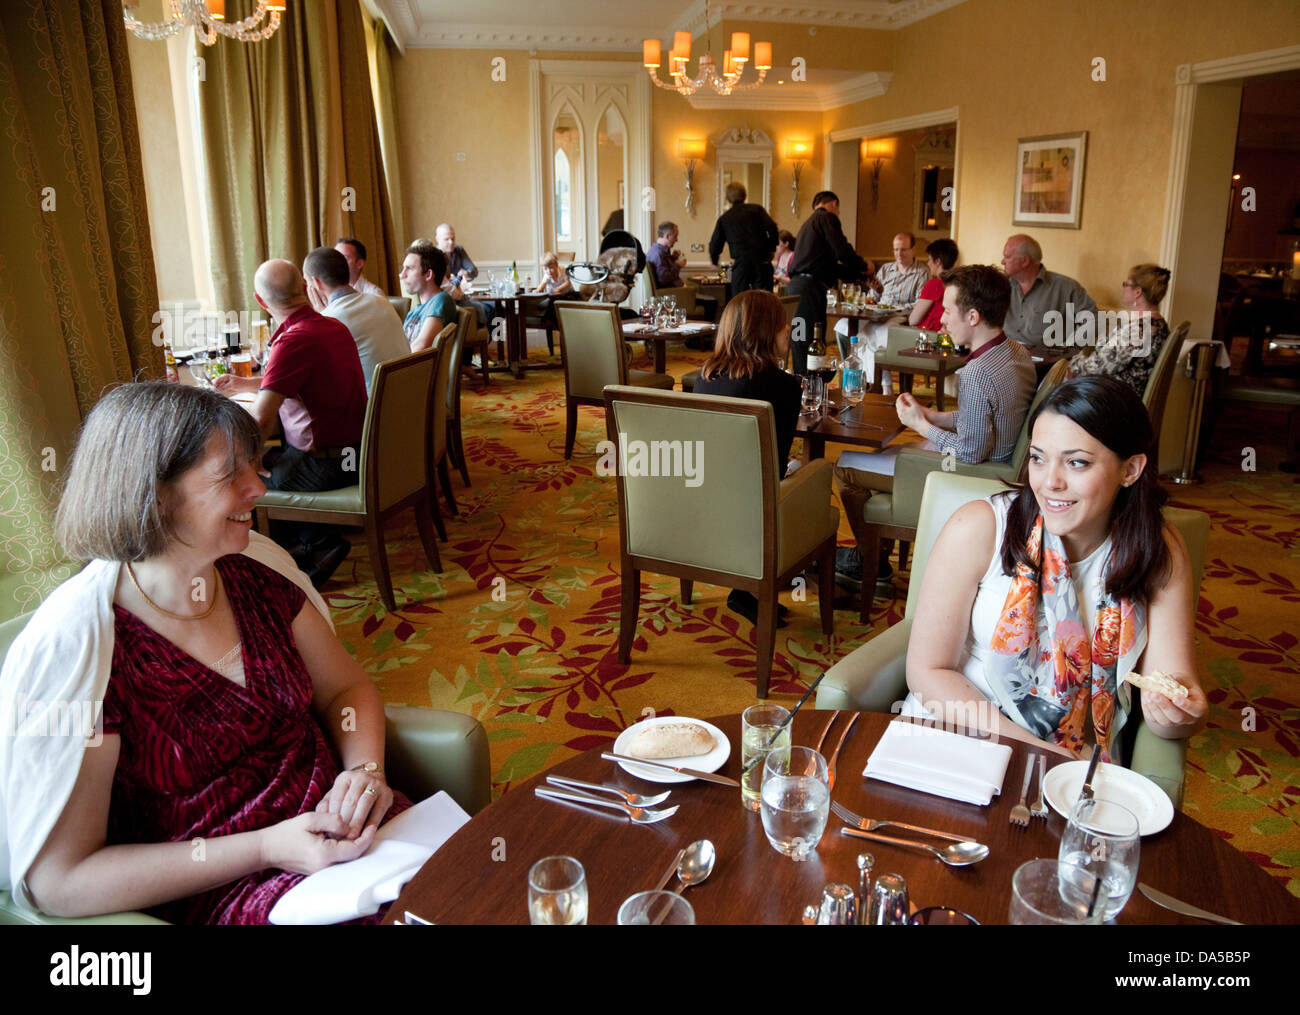 Guests in the dining room, the Marriott Sprowston Manor Hotel and Spa, Norwich, Norfolk England UK - Stock Image